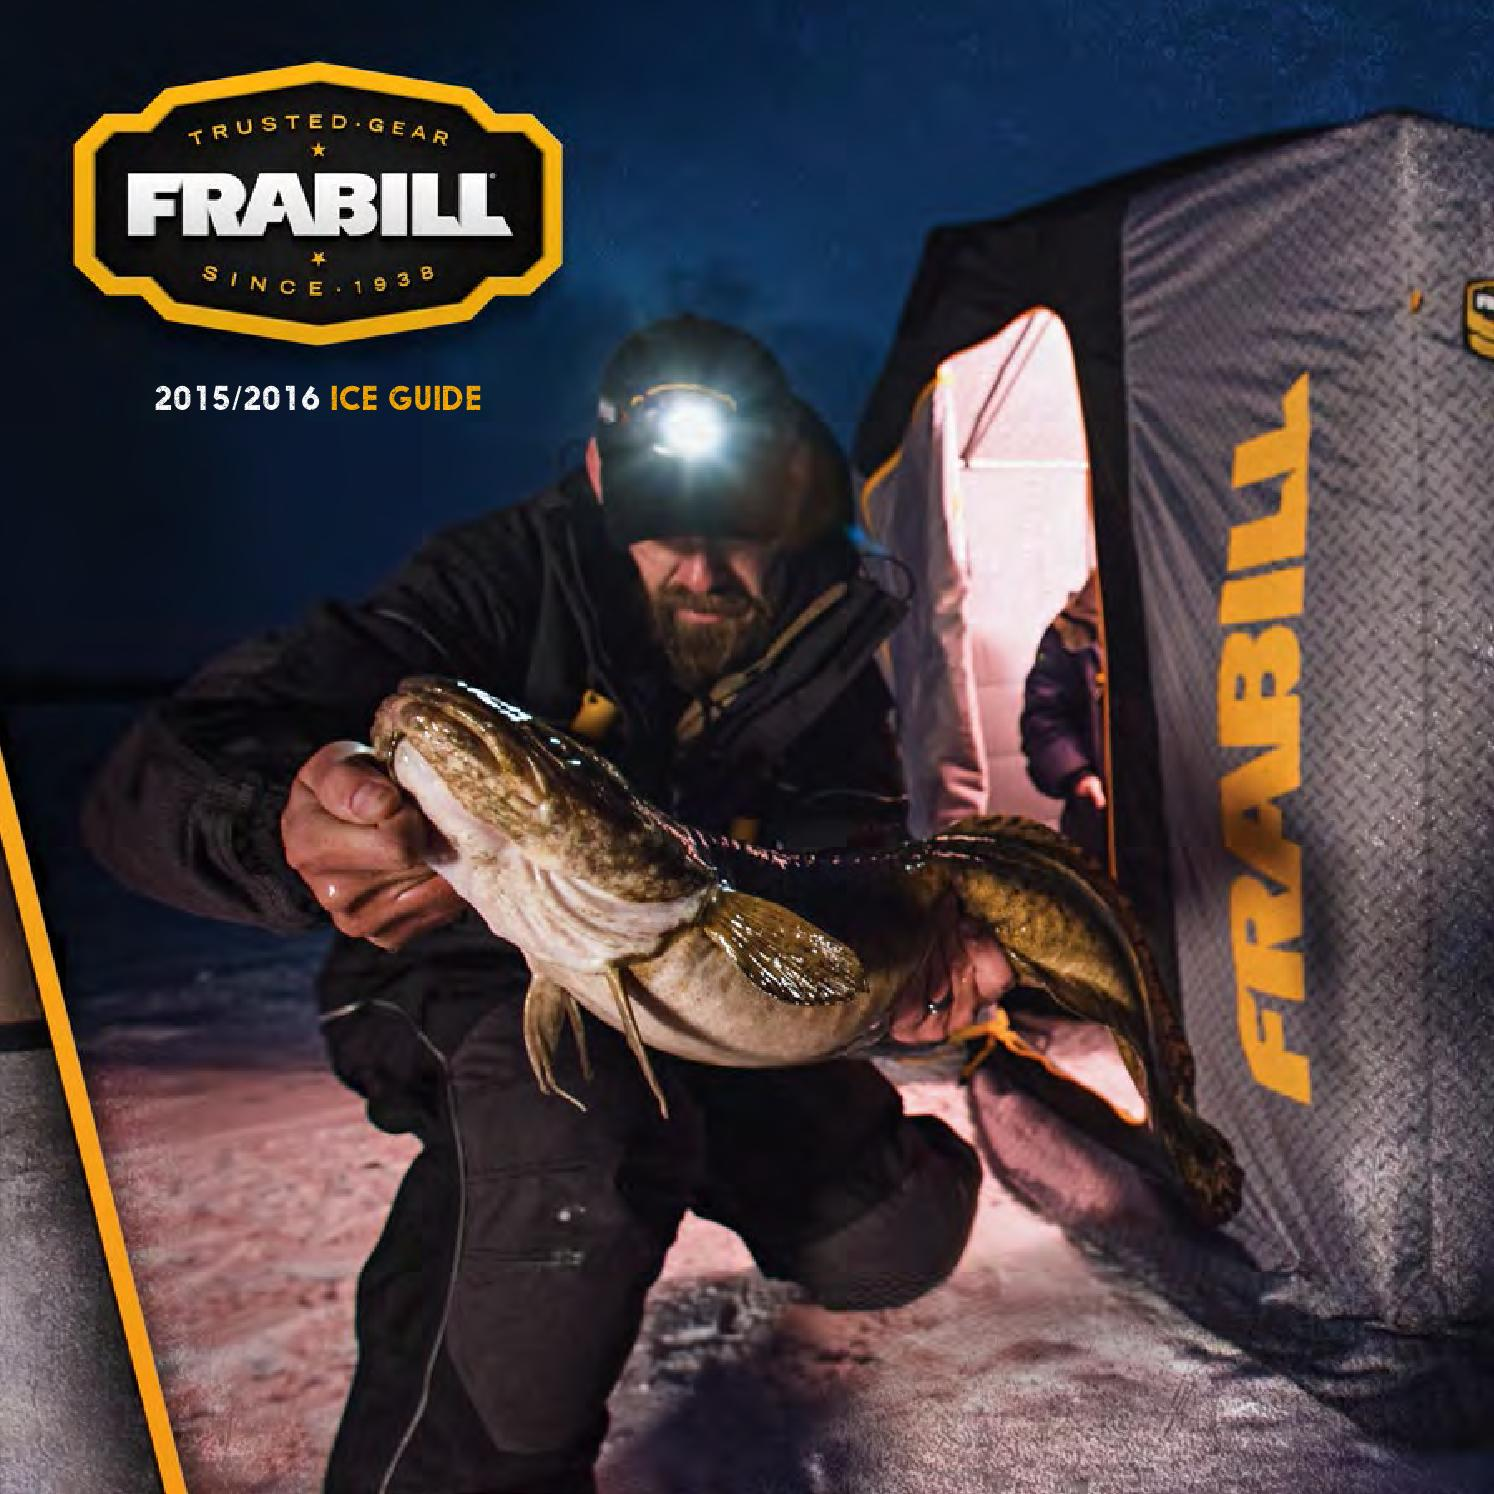 Frabill ice fishing 2016 product guide by planosynergy issuu for Frabill ice fishing suit